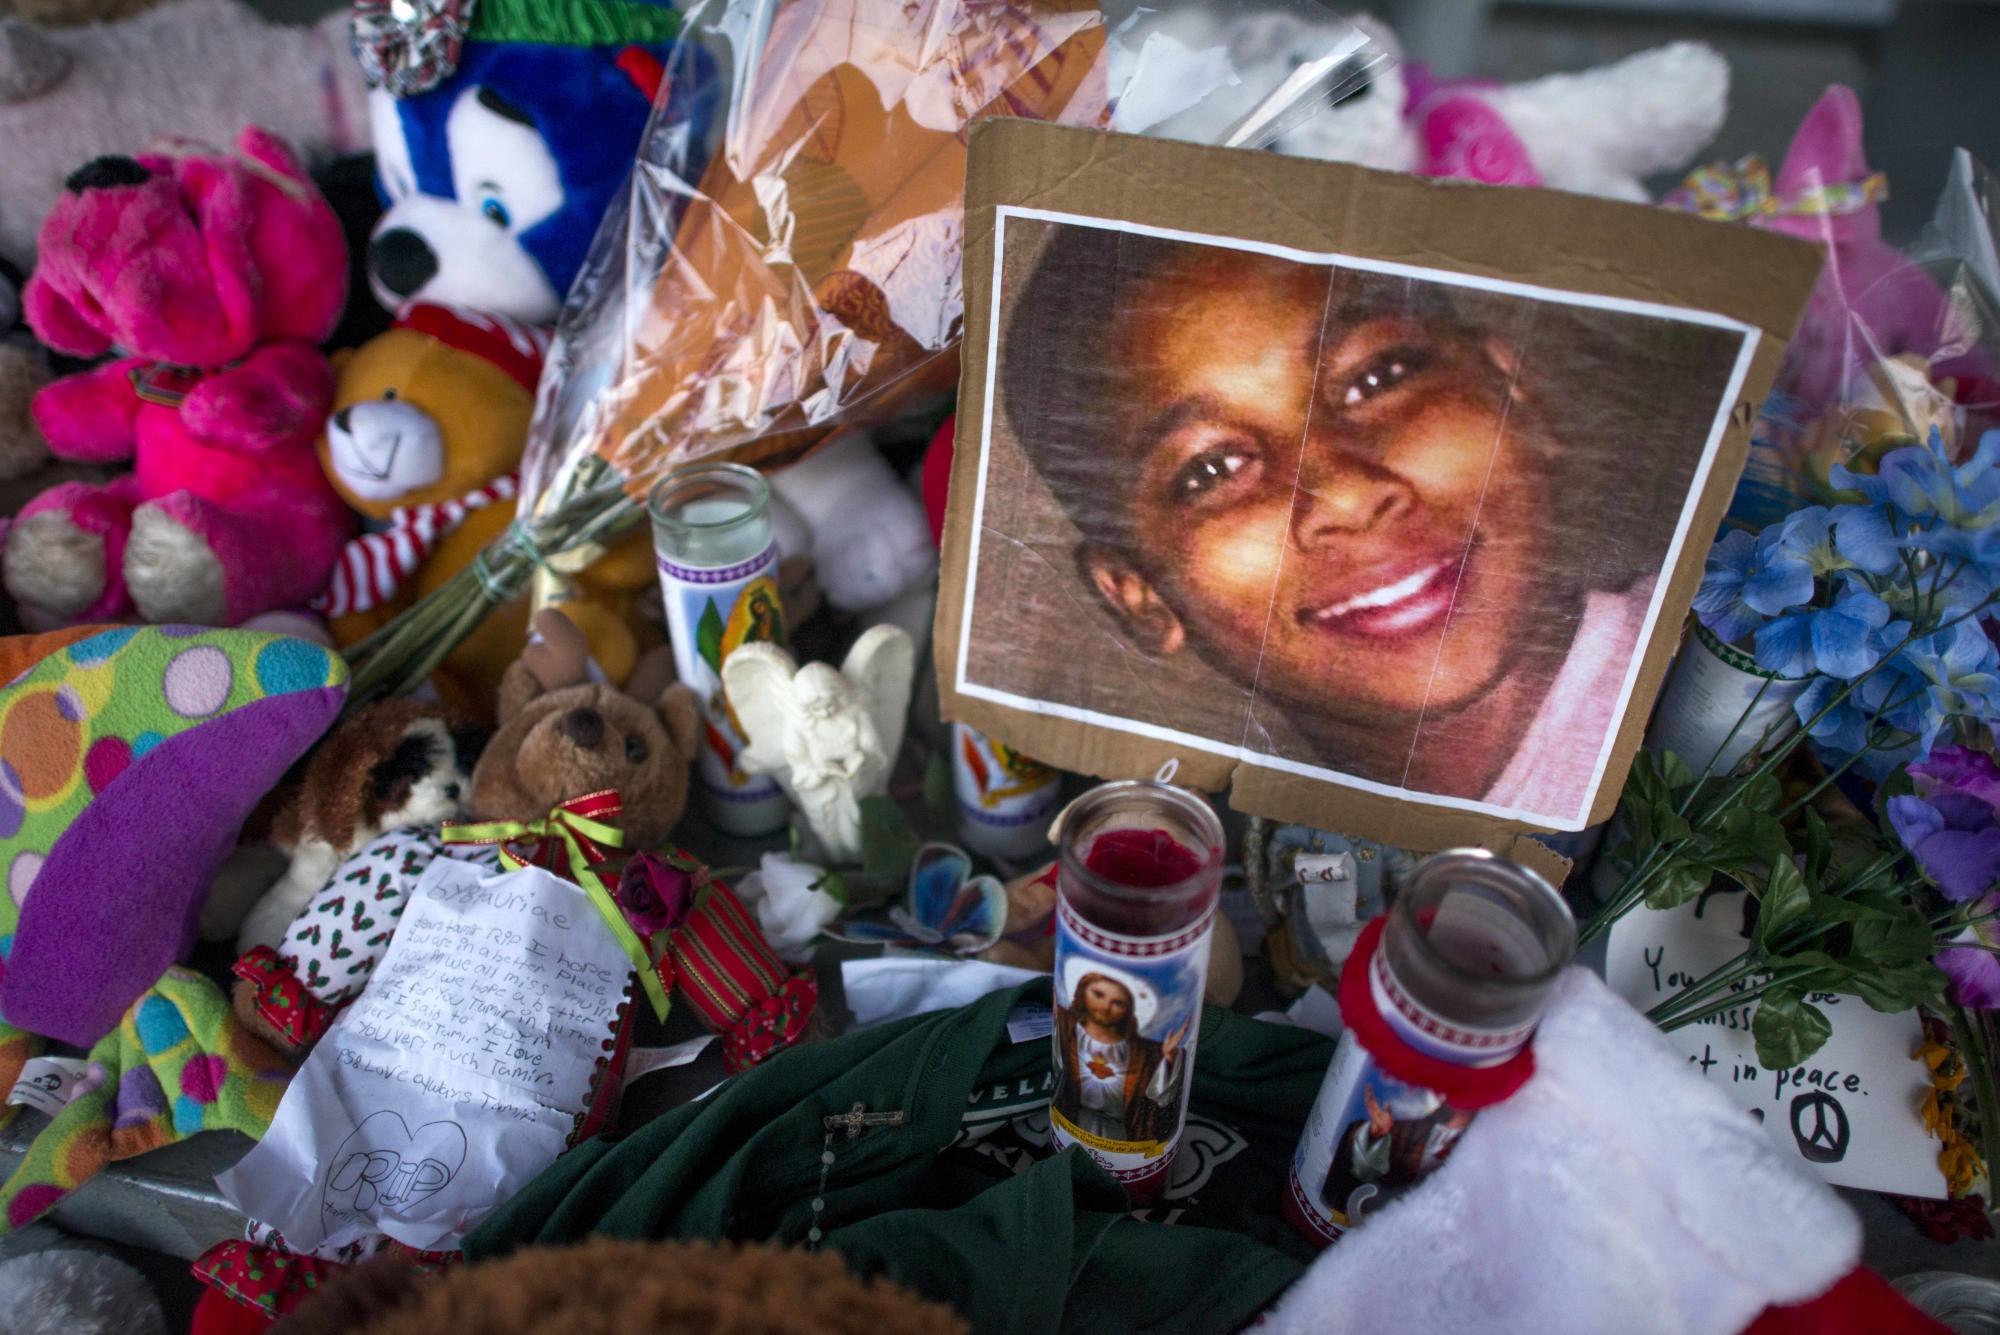 Justice Dept. Is Said to Quietly Quash Inquiry Into Tamir Rice Killing